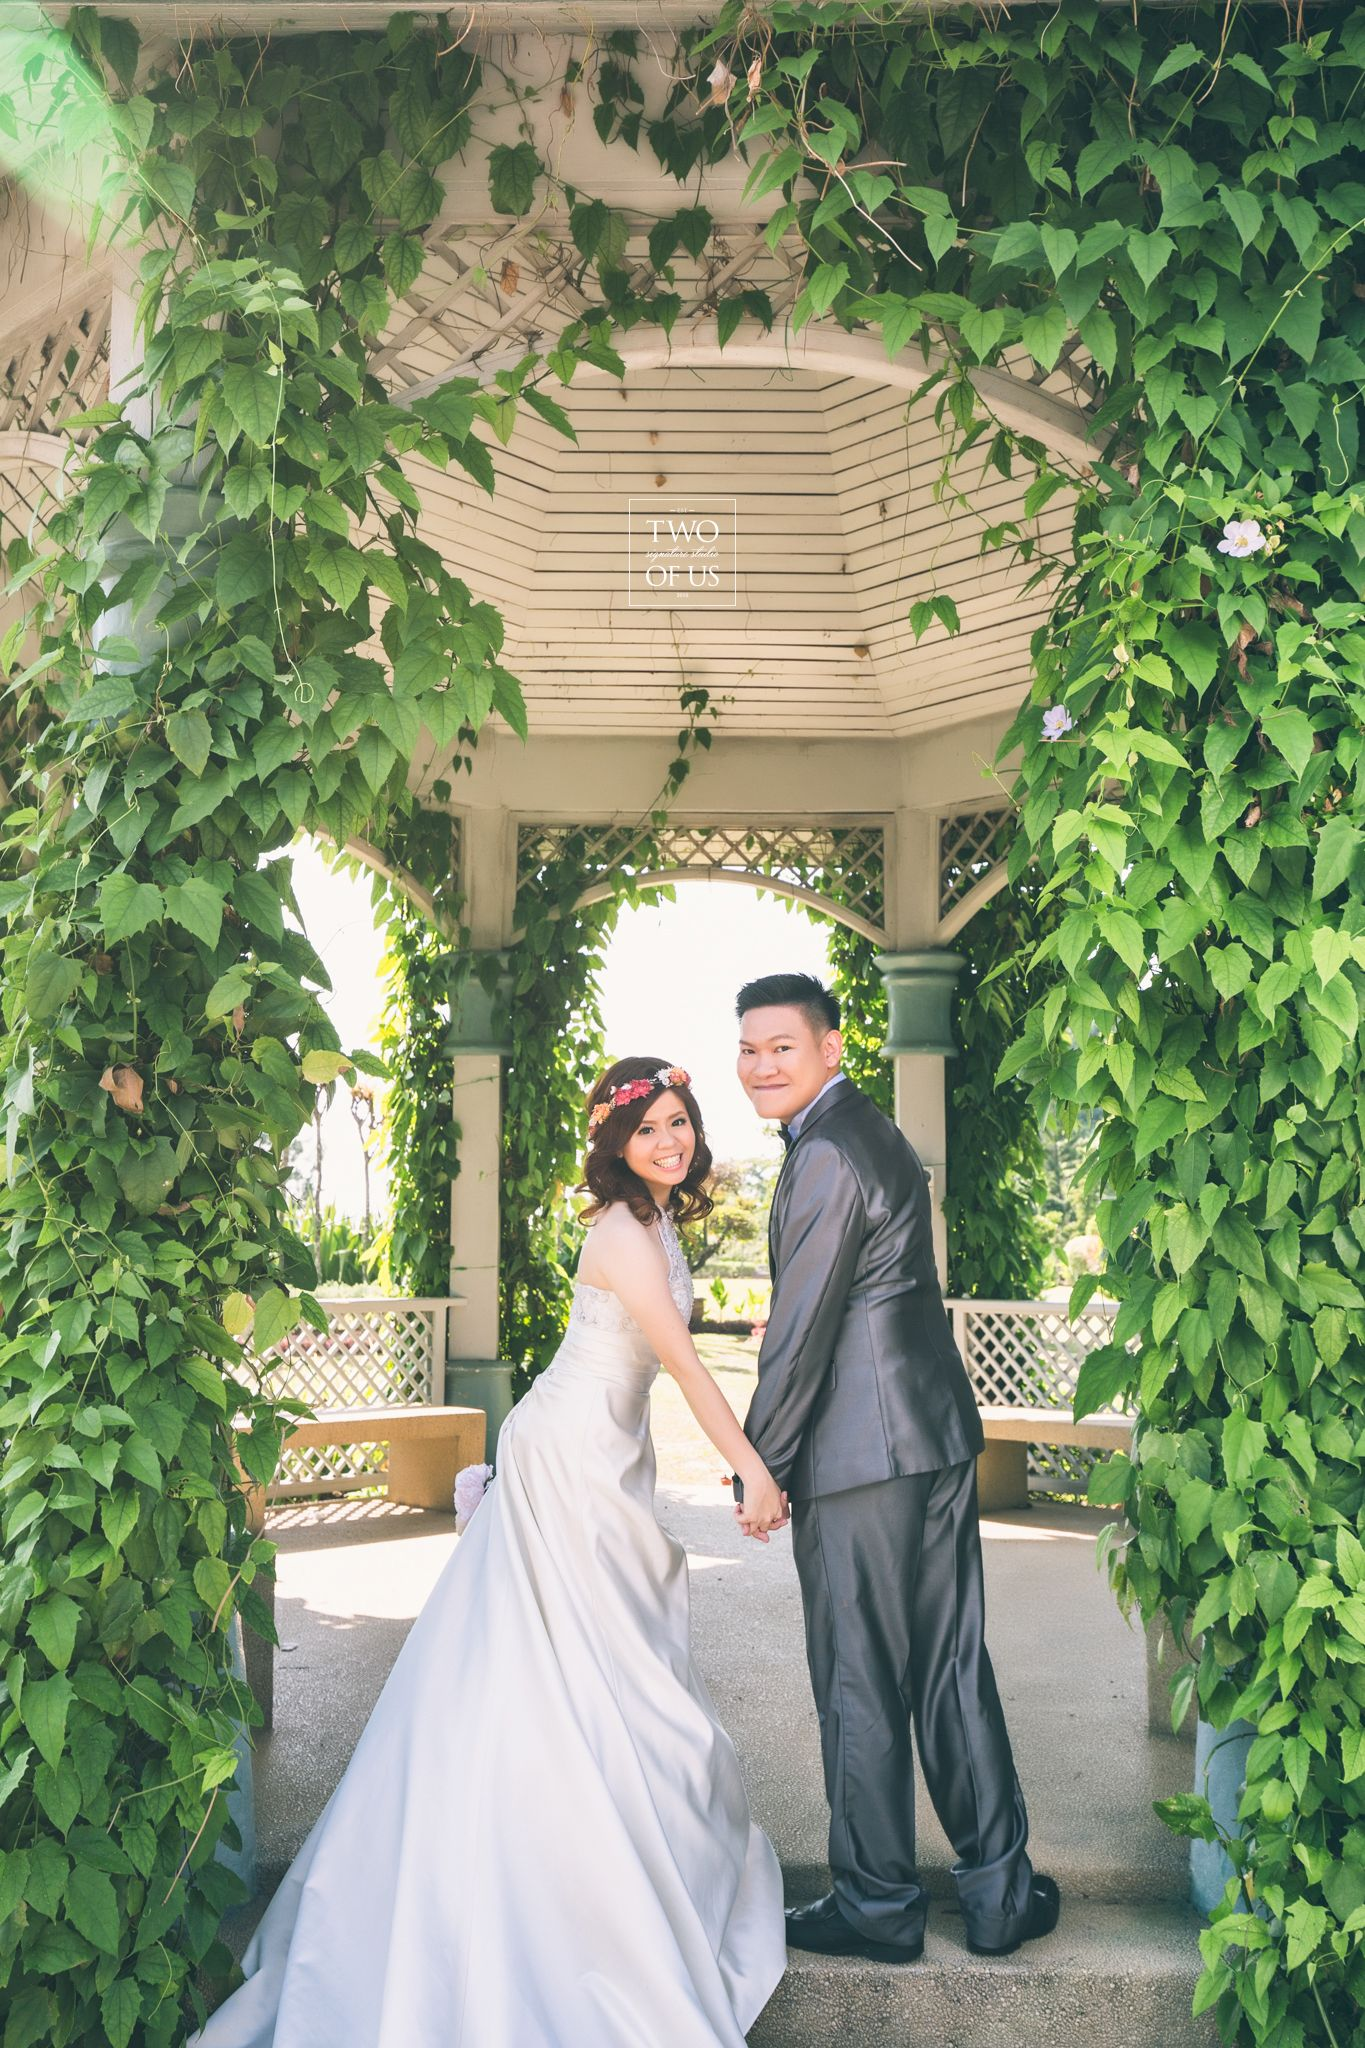 Pre Wedding Photography By Two Of Us Signature Studio